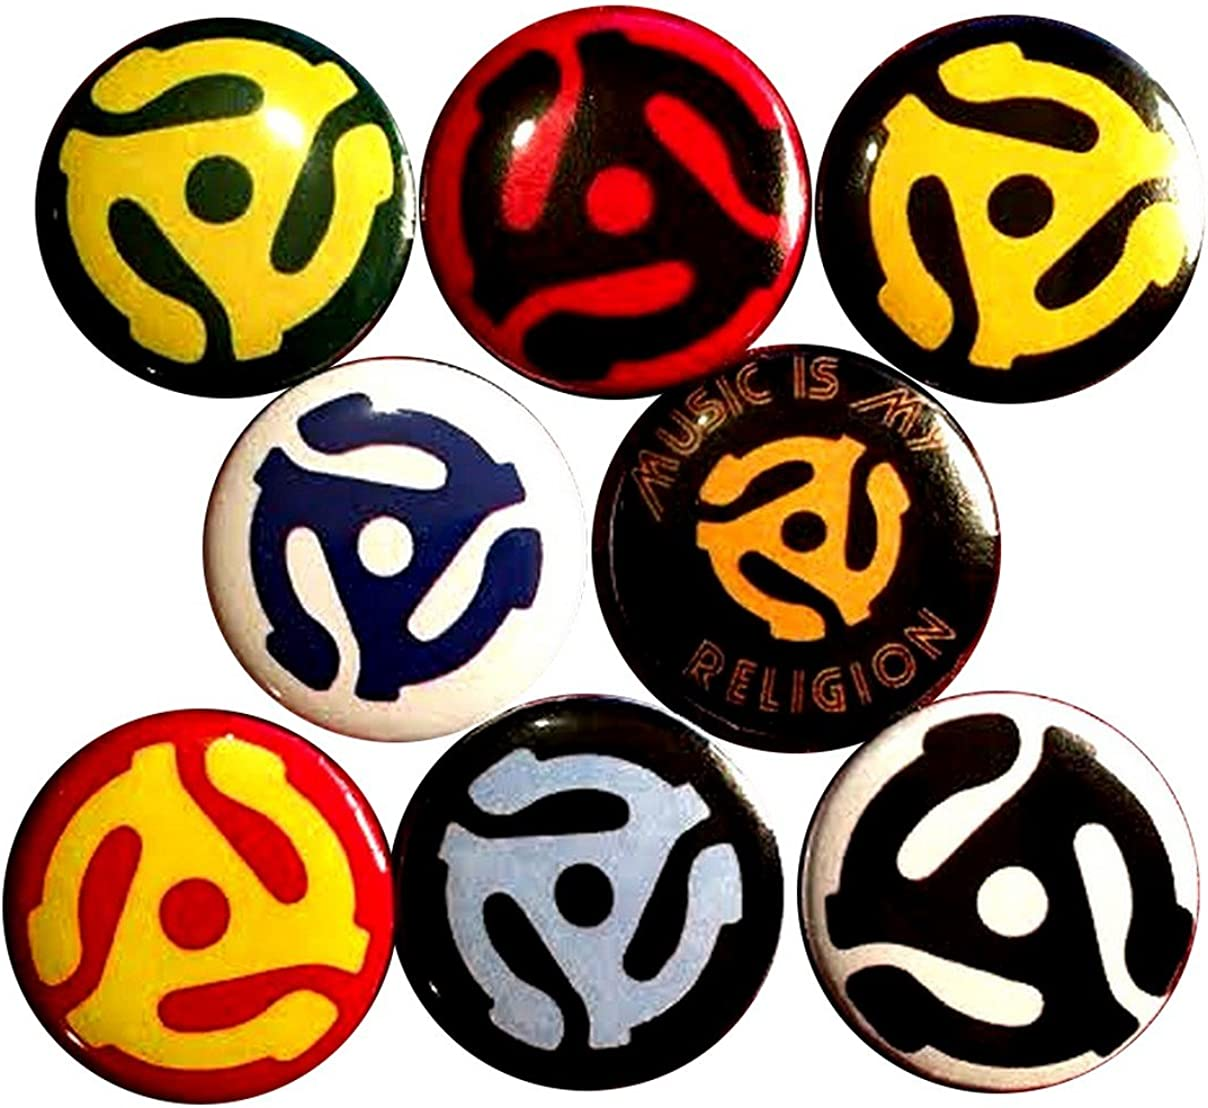 45 Adapter 8 New 1 Inch 25mm Buttons Clearance SALE Limited time Pinback Set famous Badges P of